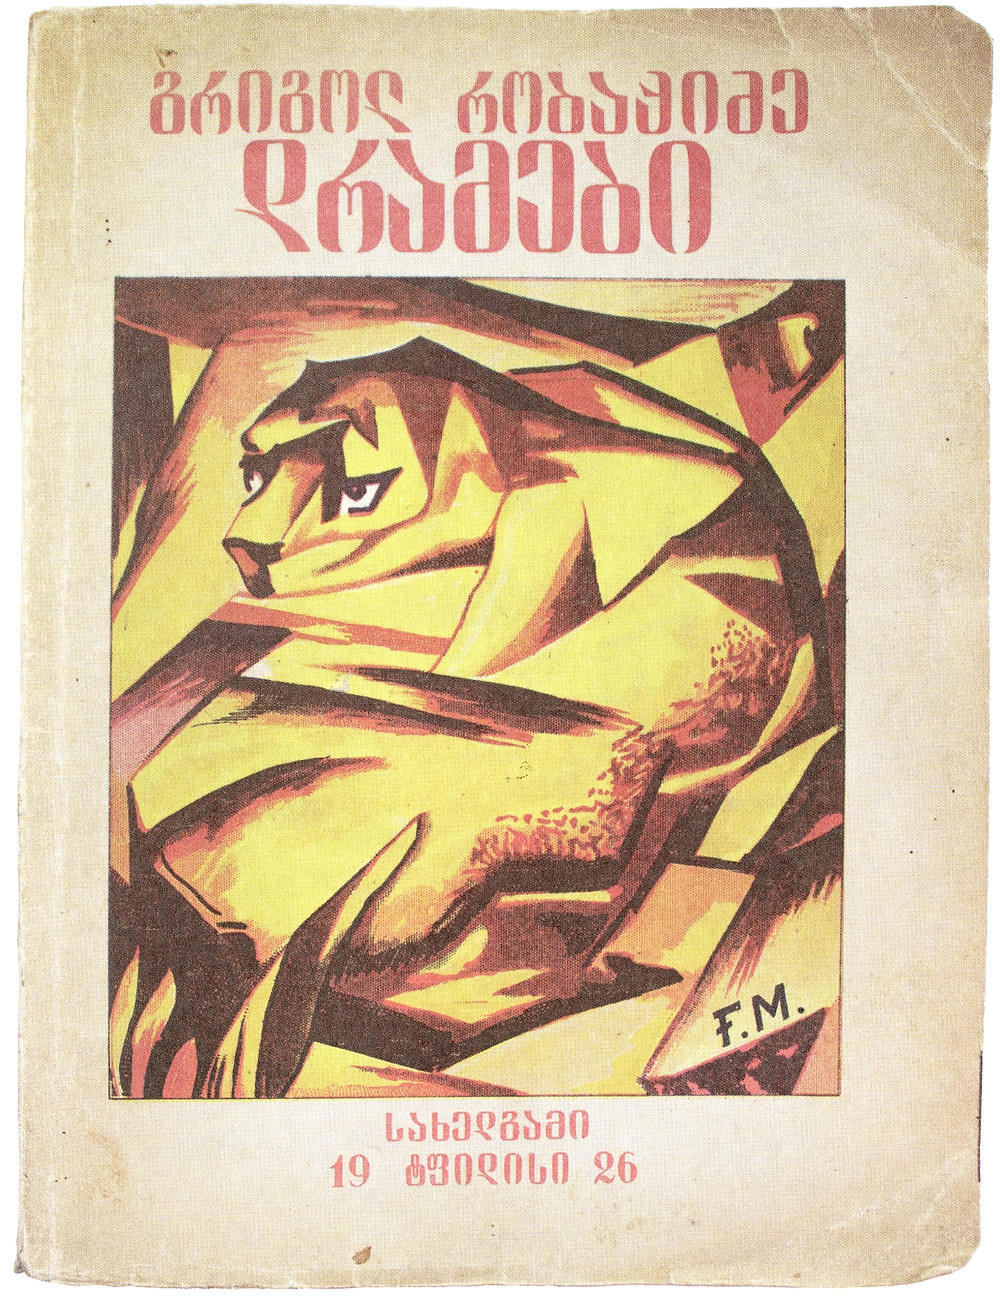 Cover based on painting by Franz Marc, 1926.